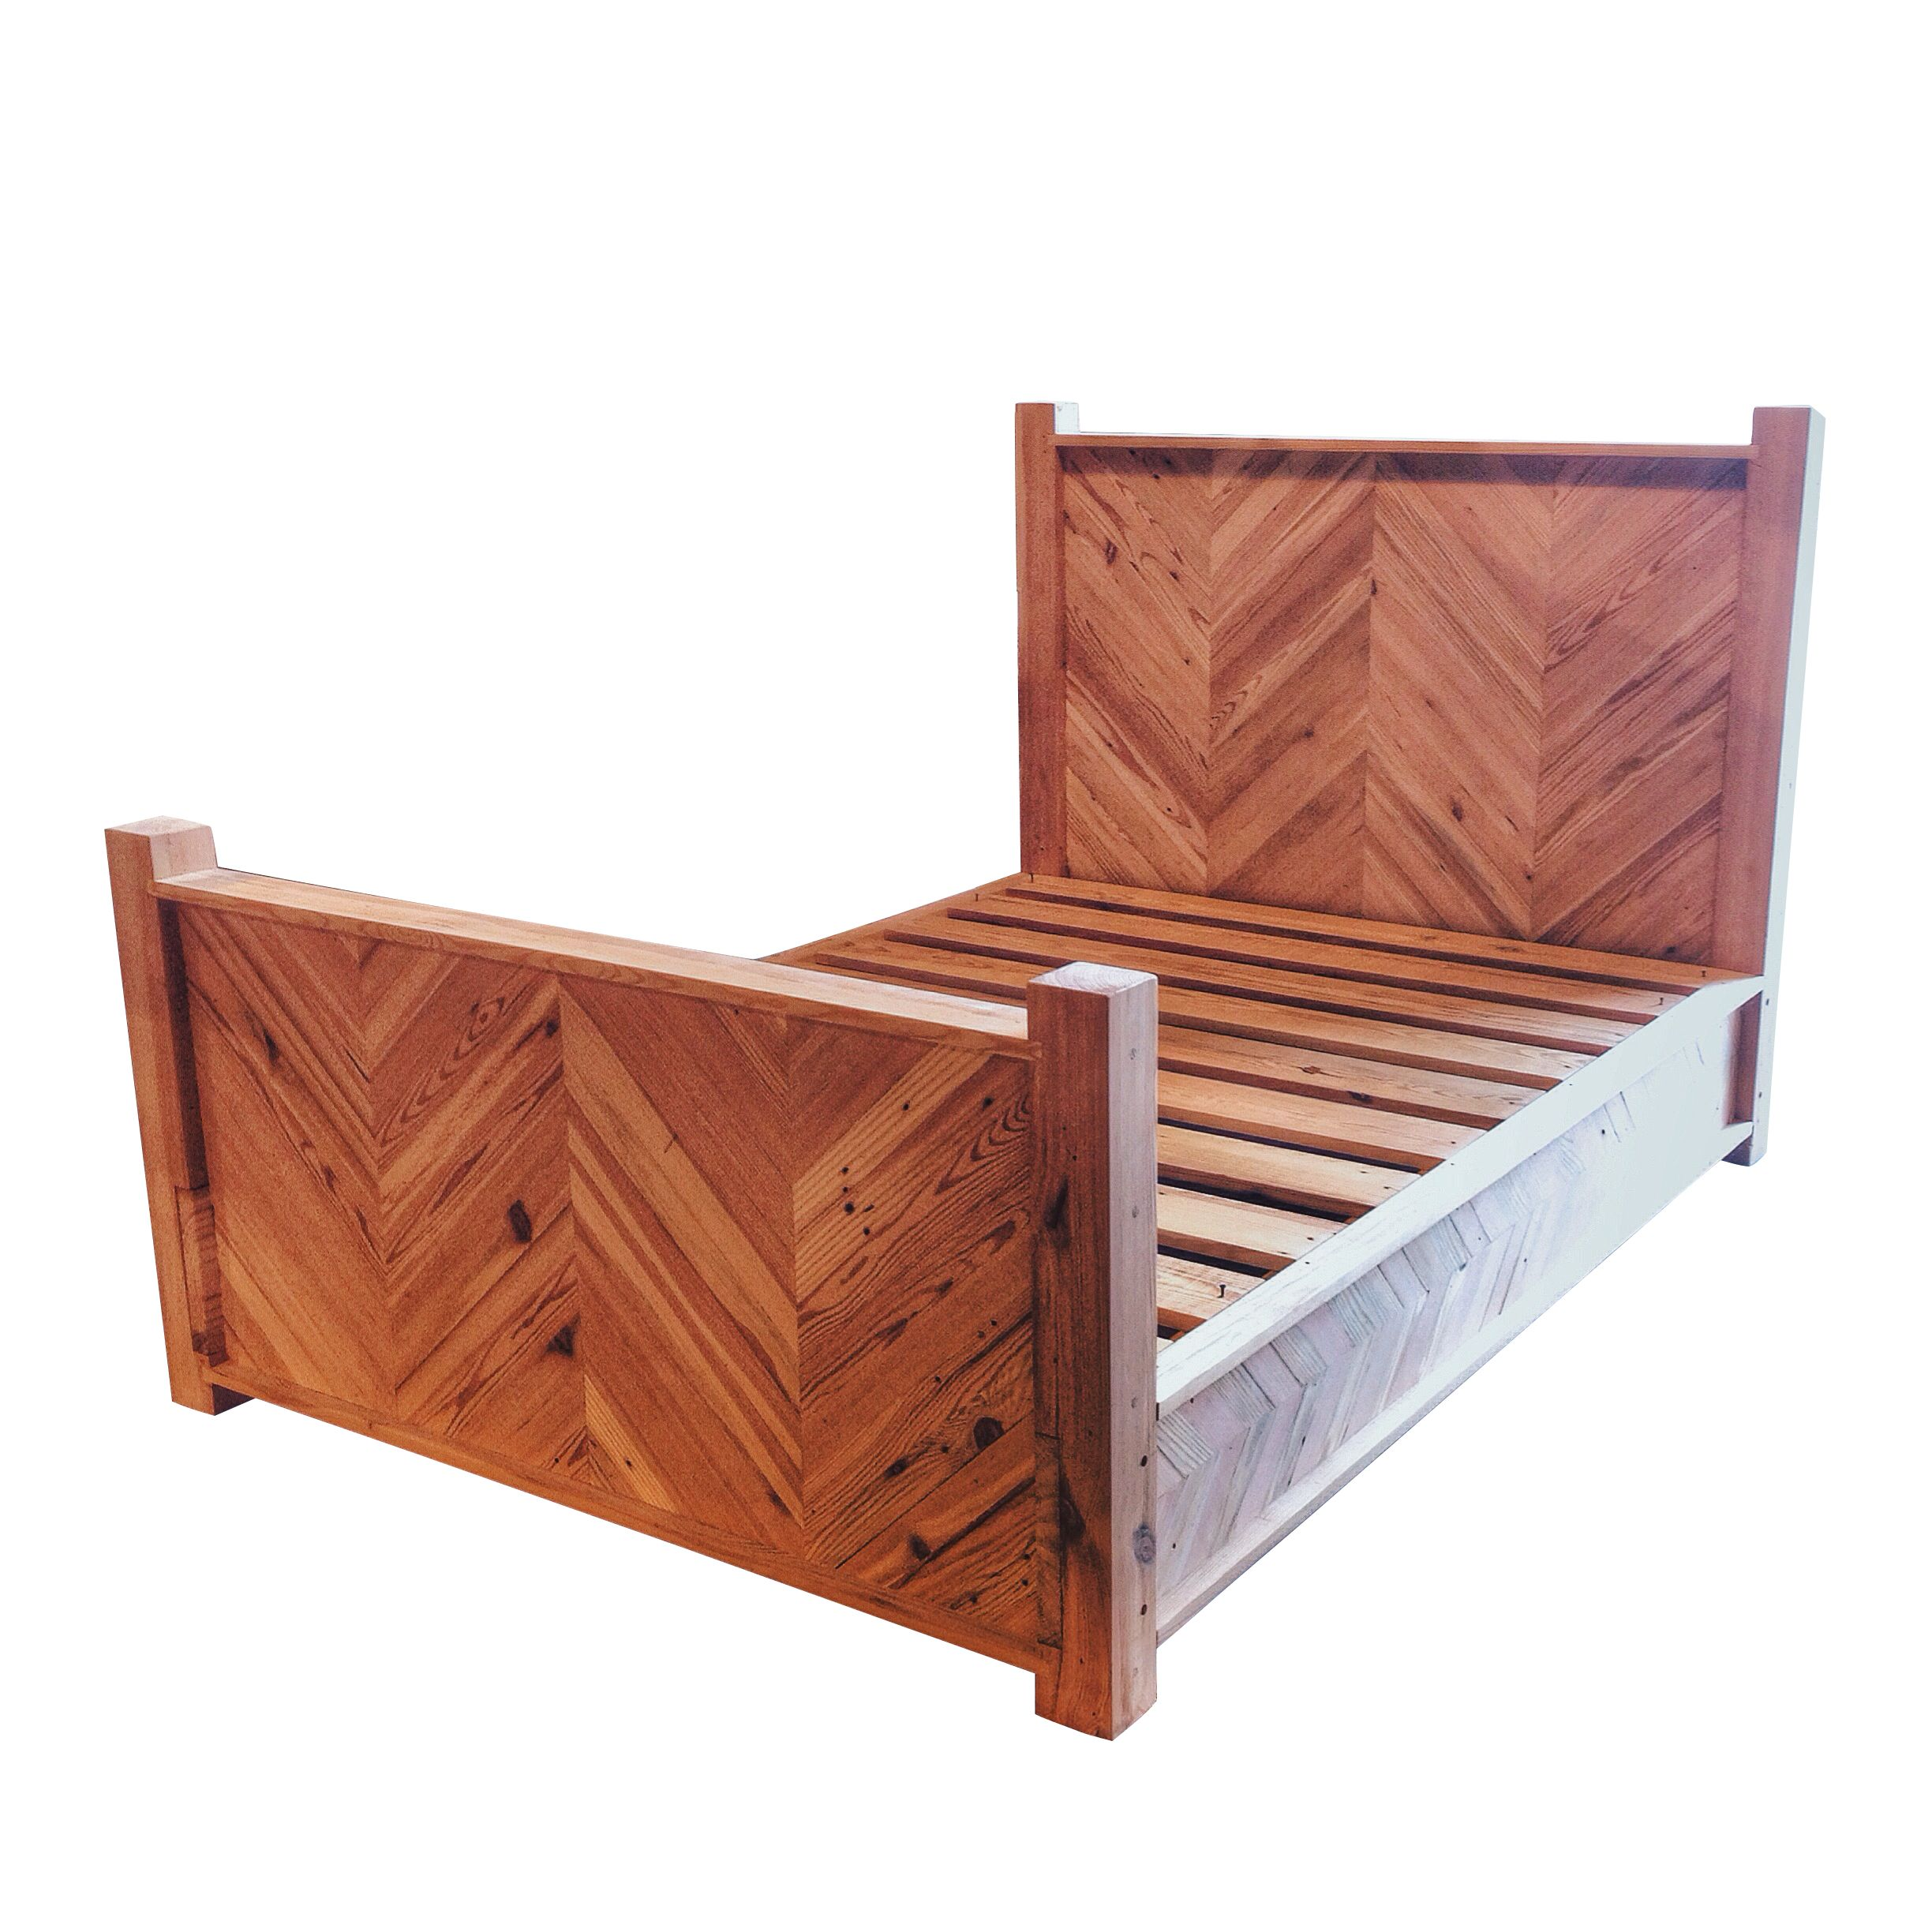 This is our Chevron Platform Bed. It is made from Antique